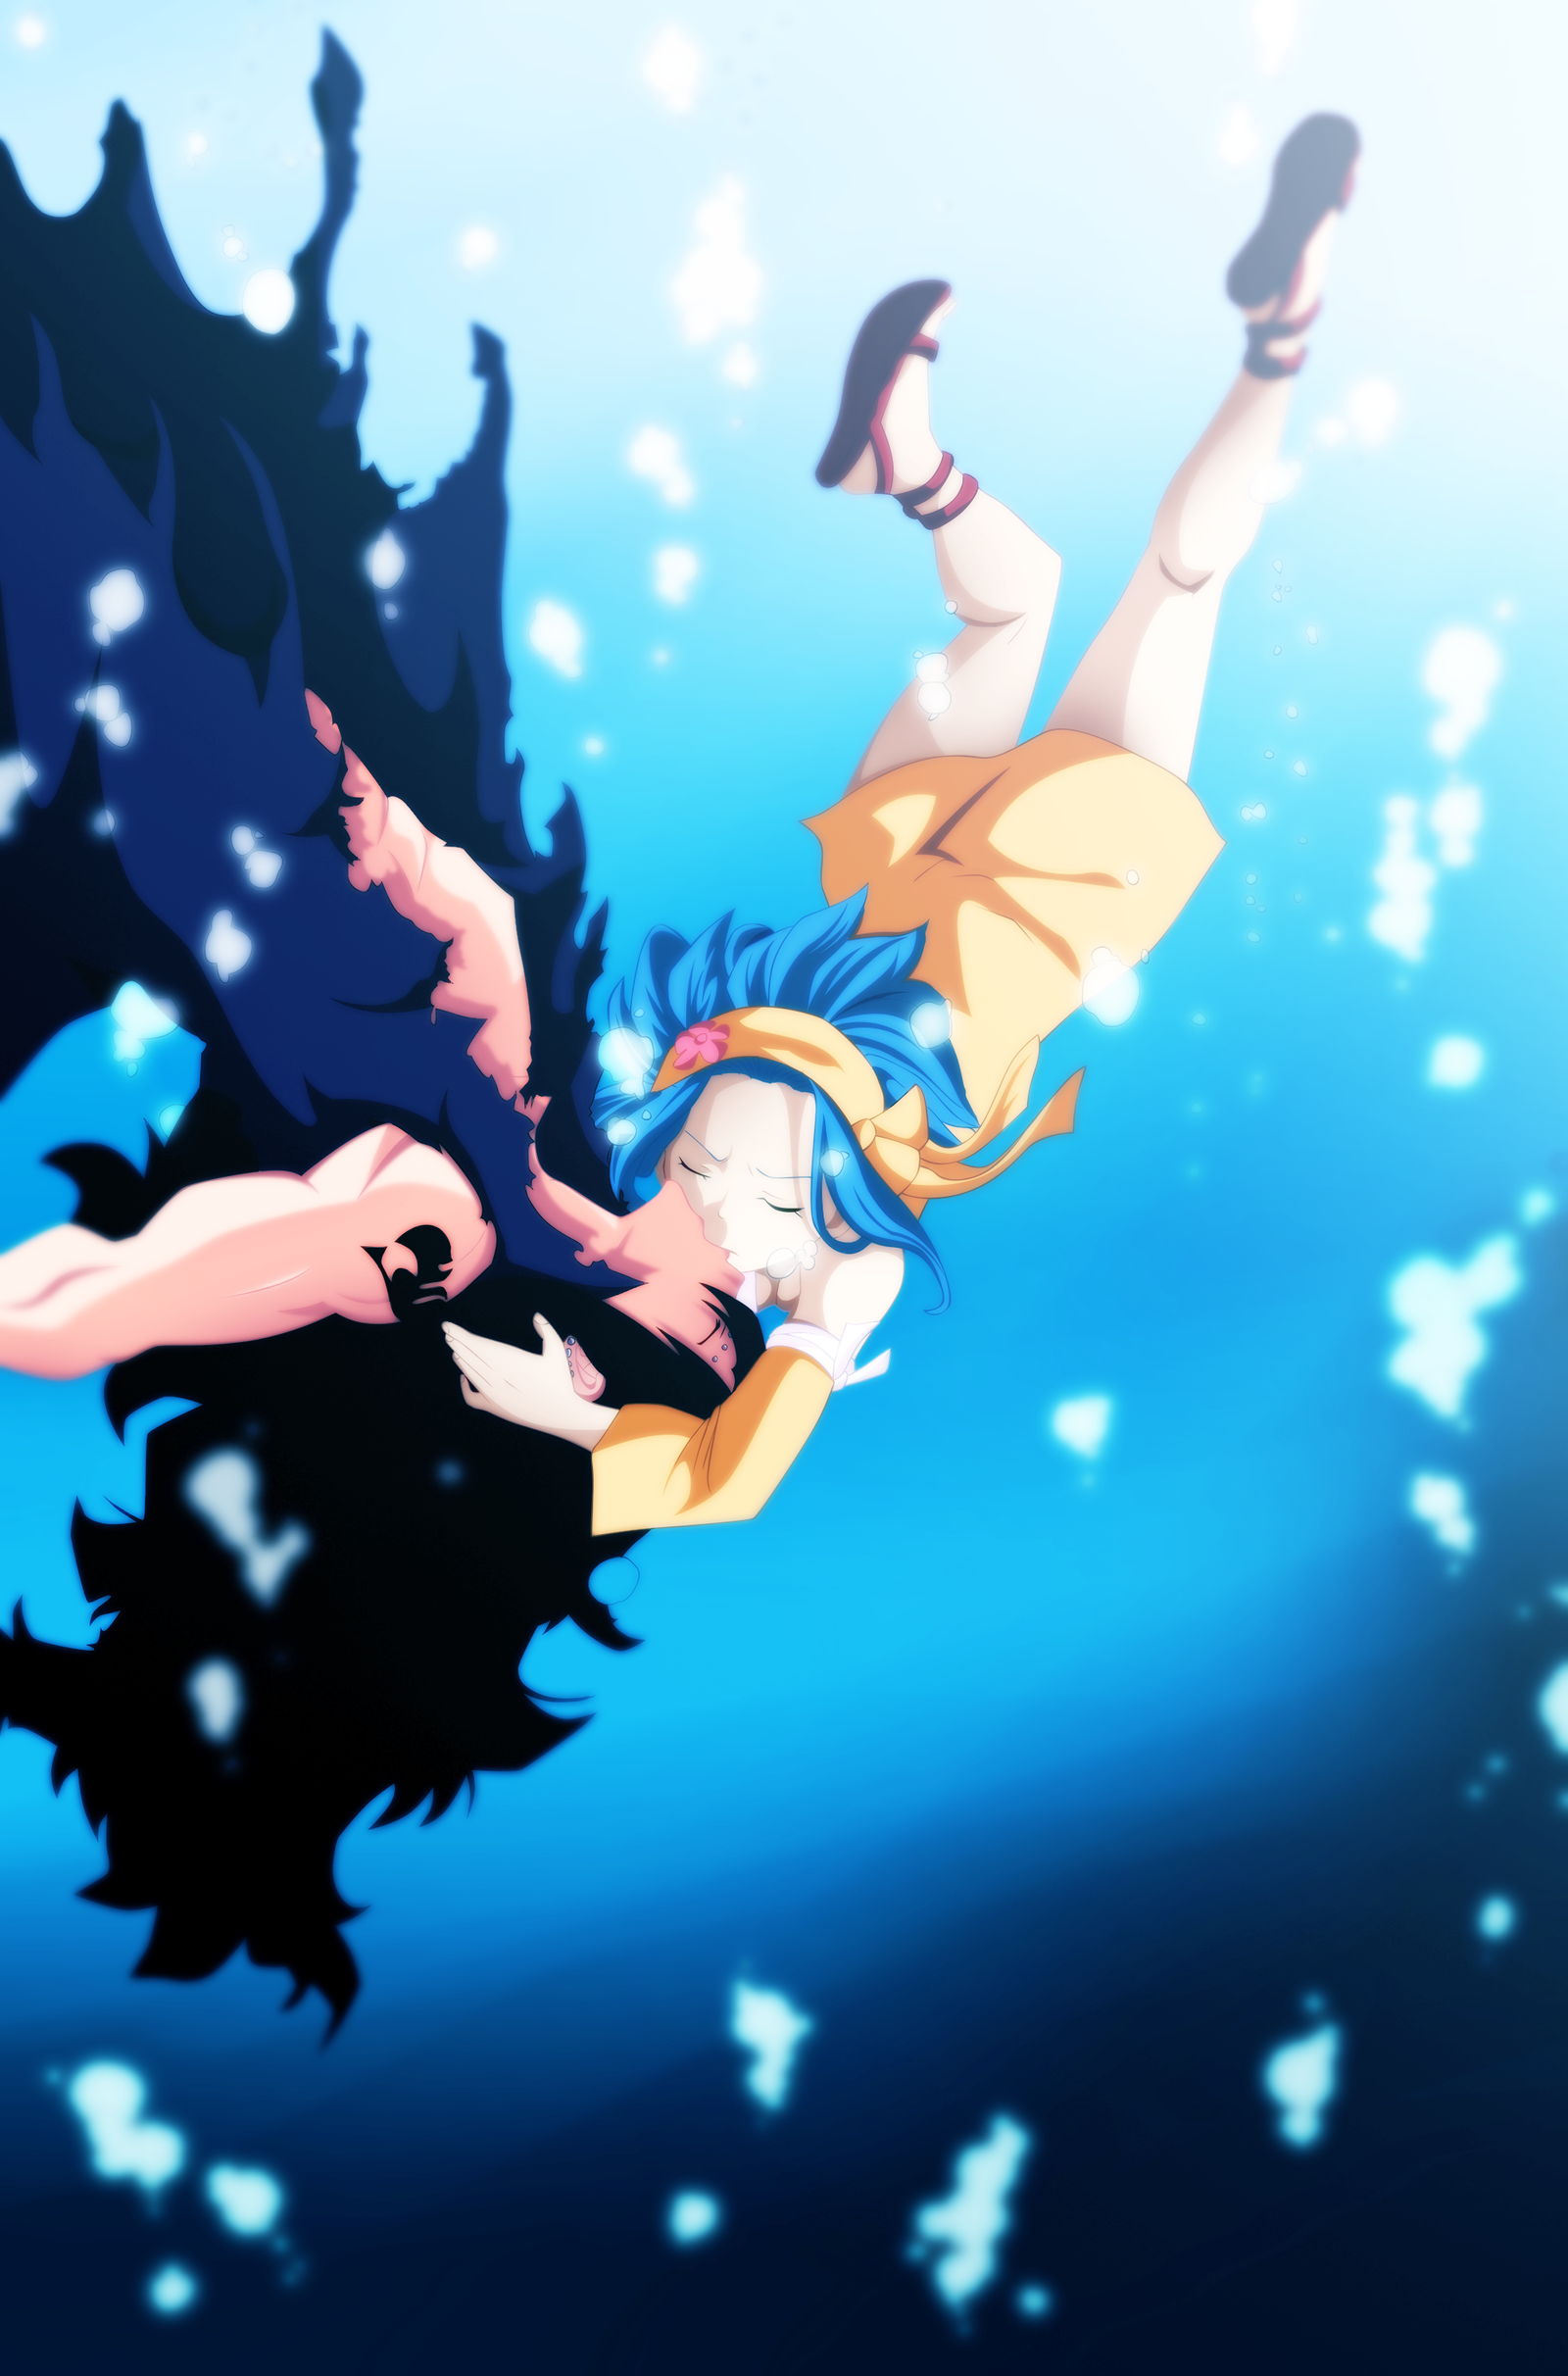 Gajeel and Levy Kiss by StormStyle on DeviantArt